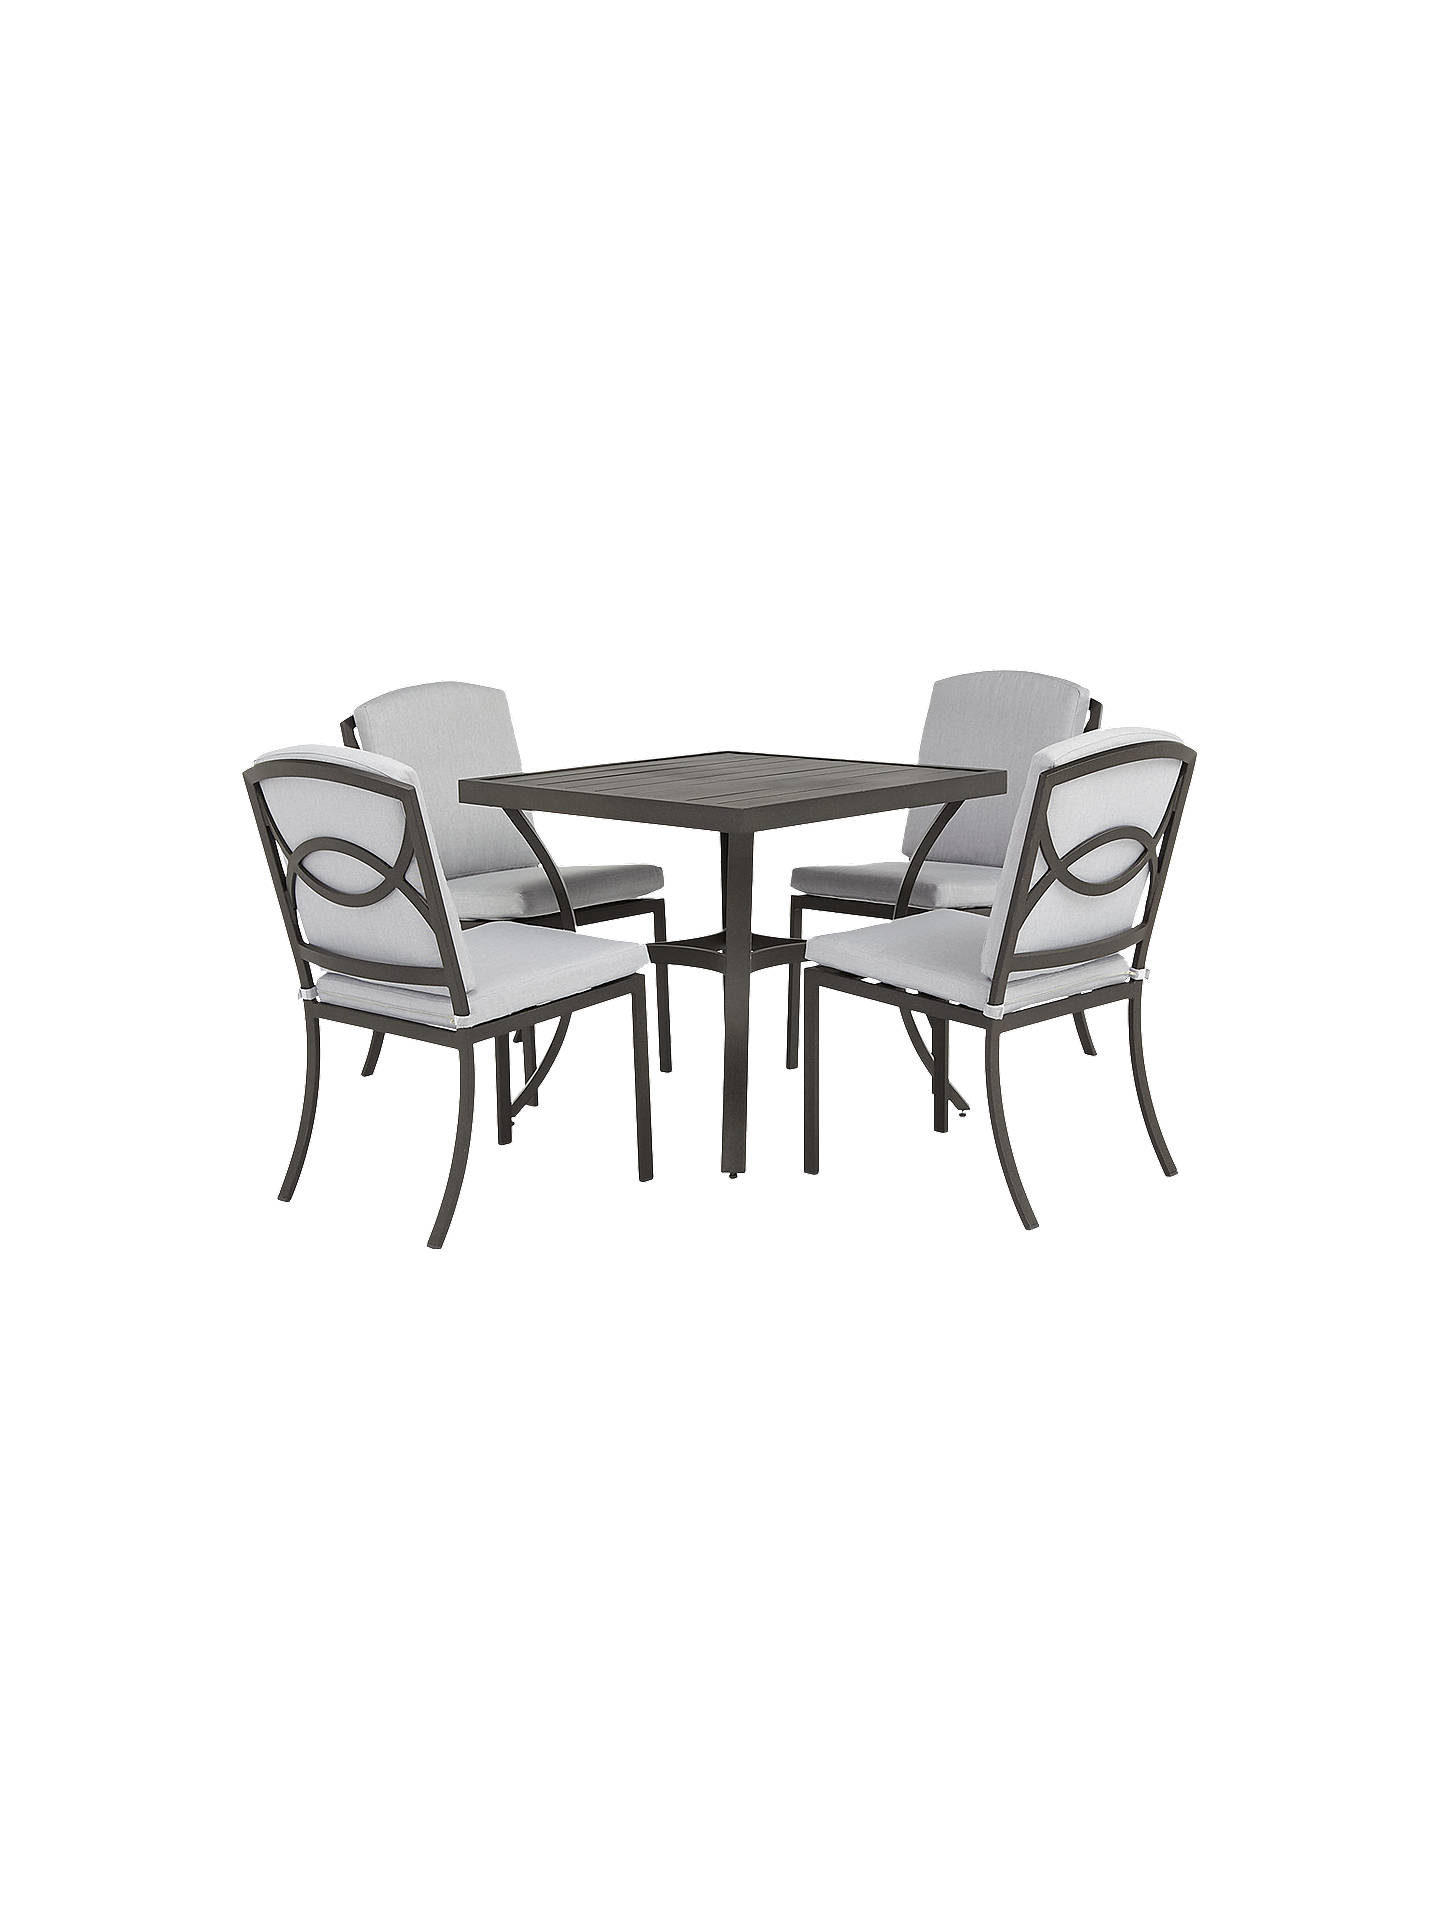 Buy John Lewis Partners Marlow Aluminium 4 Seater Dining Table And Chairs Set Black